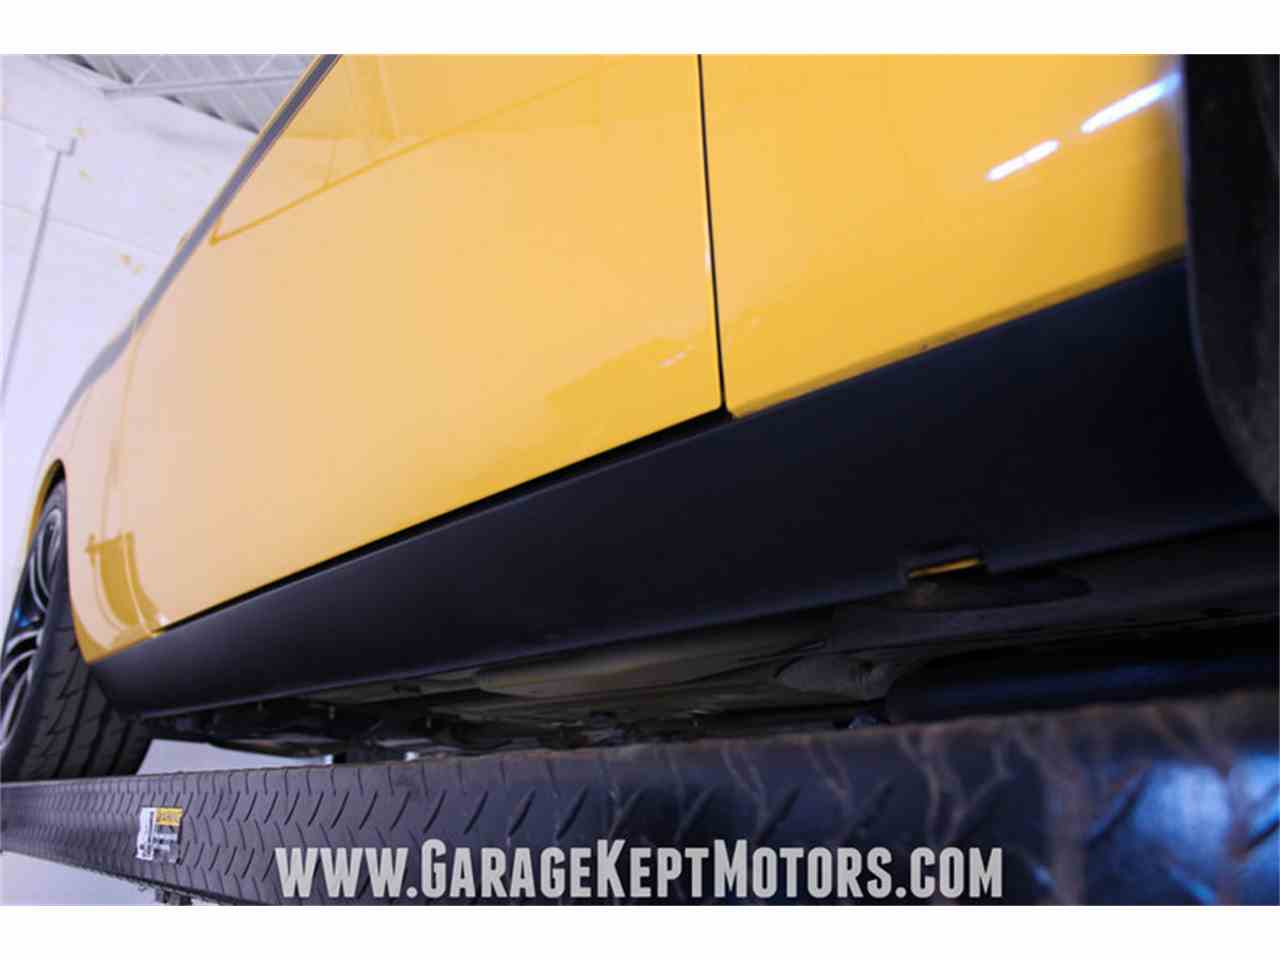 Large Picture of 2012 Challenger SRT8 392 Yellow Jacket located in Grand Rapids Michigan - $36,500.00 - MAXR